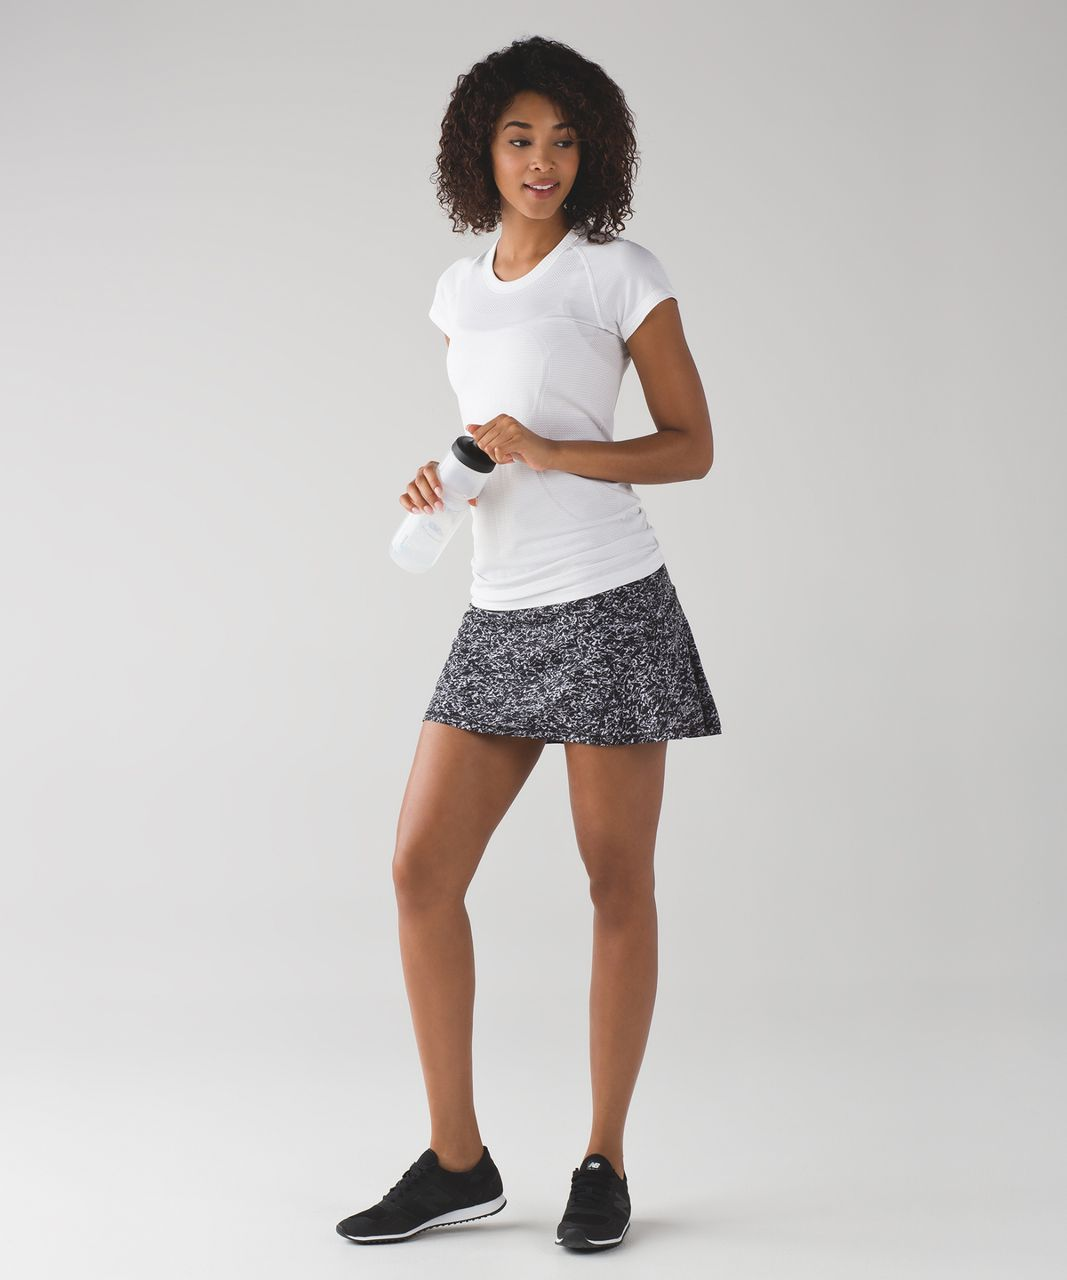 "Lululemon Circuit Breaker Skirt (Regular) (13"") - Iced Wave White Black / Ice Breaker White Black"